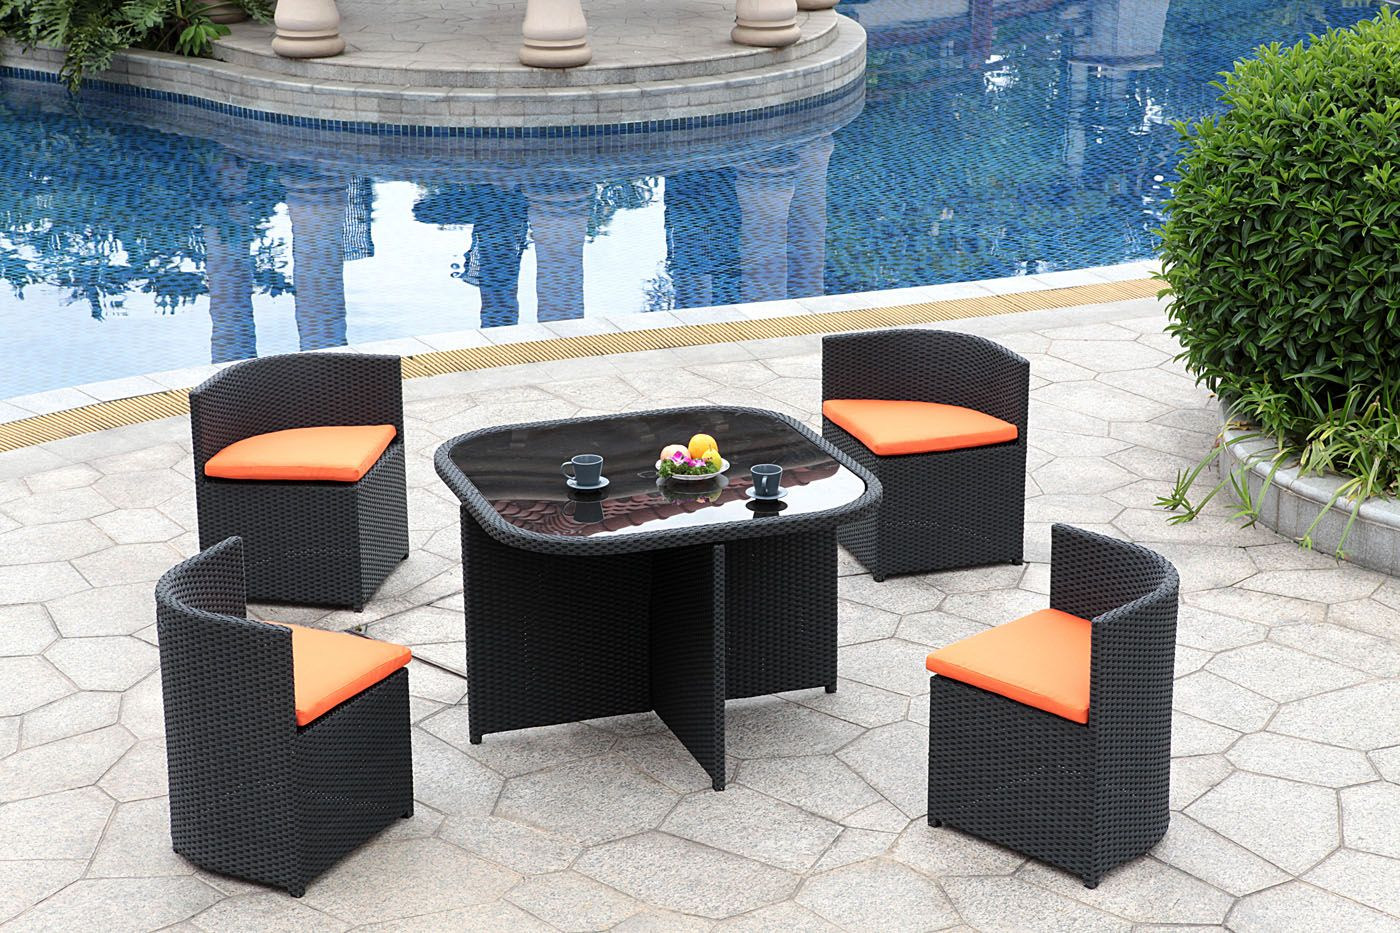 High Quality Patio U0026 Outdoor Wicker Outdoor Patio Furniture Set 5 Pc Conversation Set  Tempered Glass Top Table